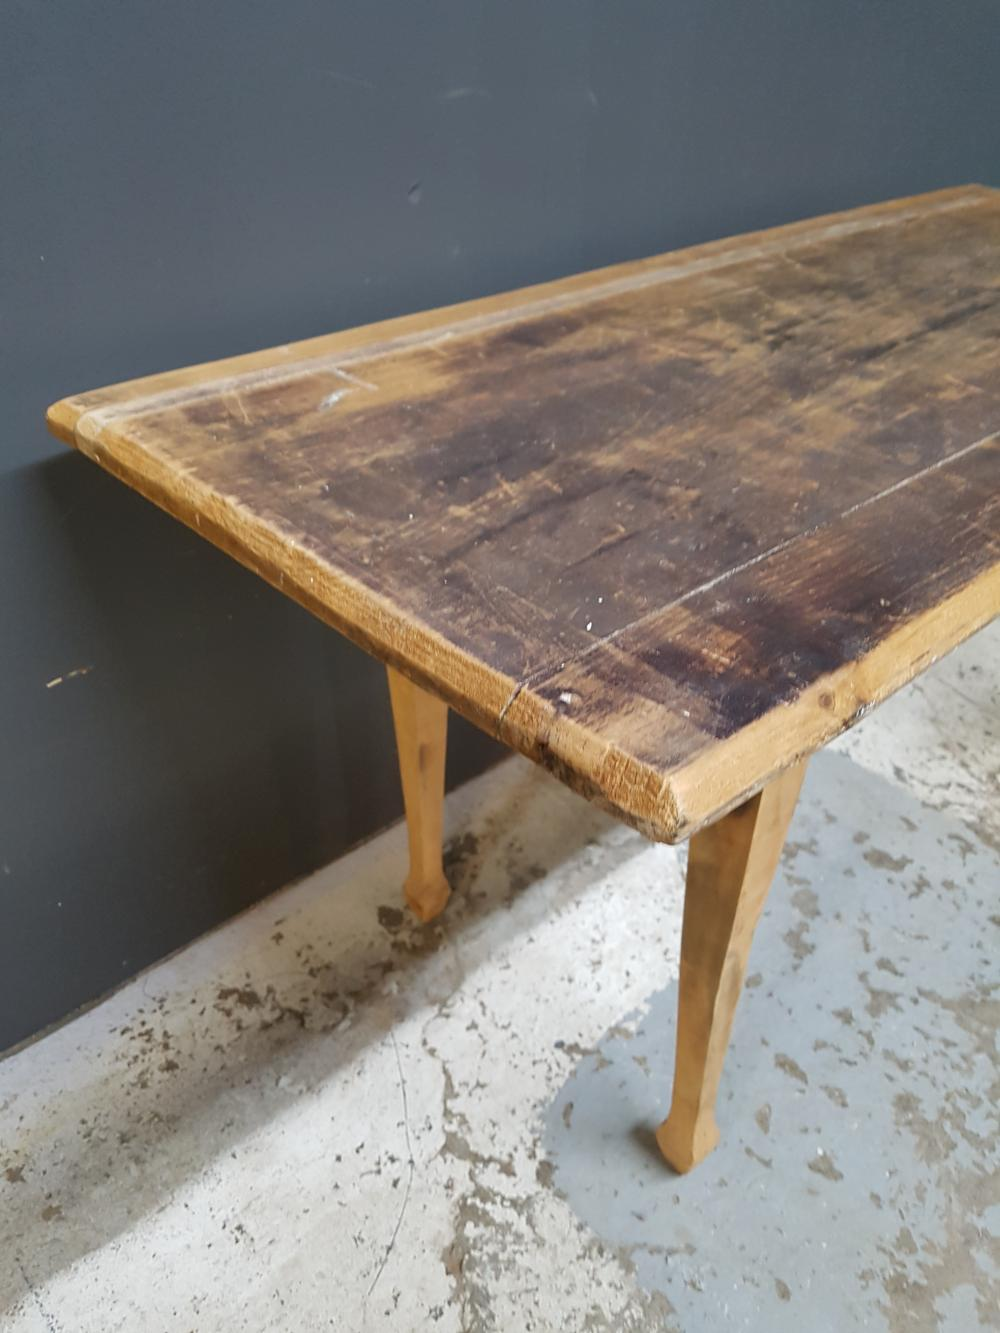 Enjoyable Small Pine Coffee Table Unemploymentrelief Wooden Chair Designs For Living Room Unemploymentrelieforg